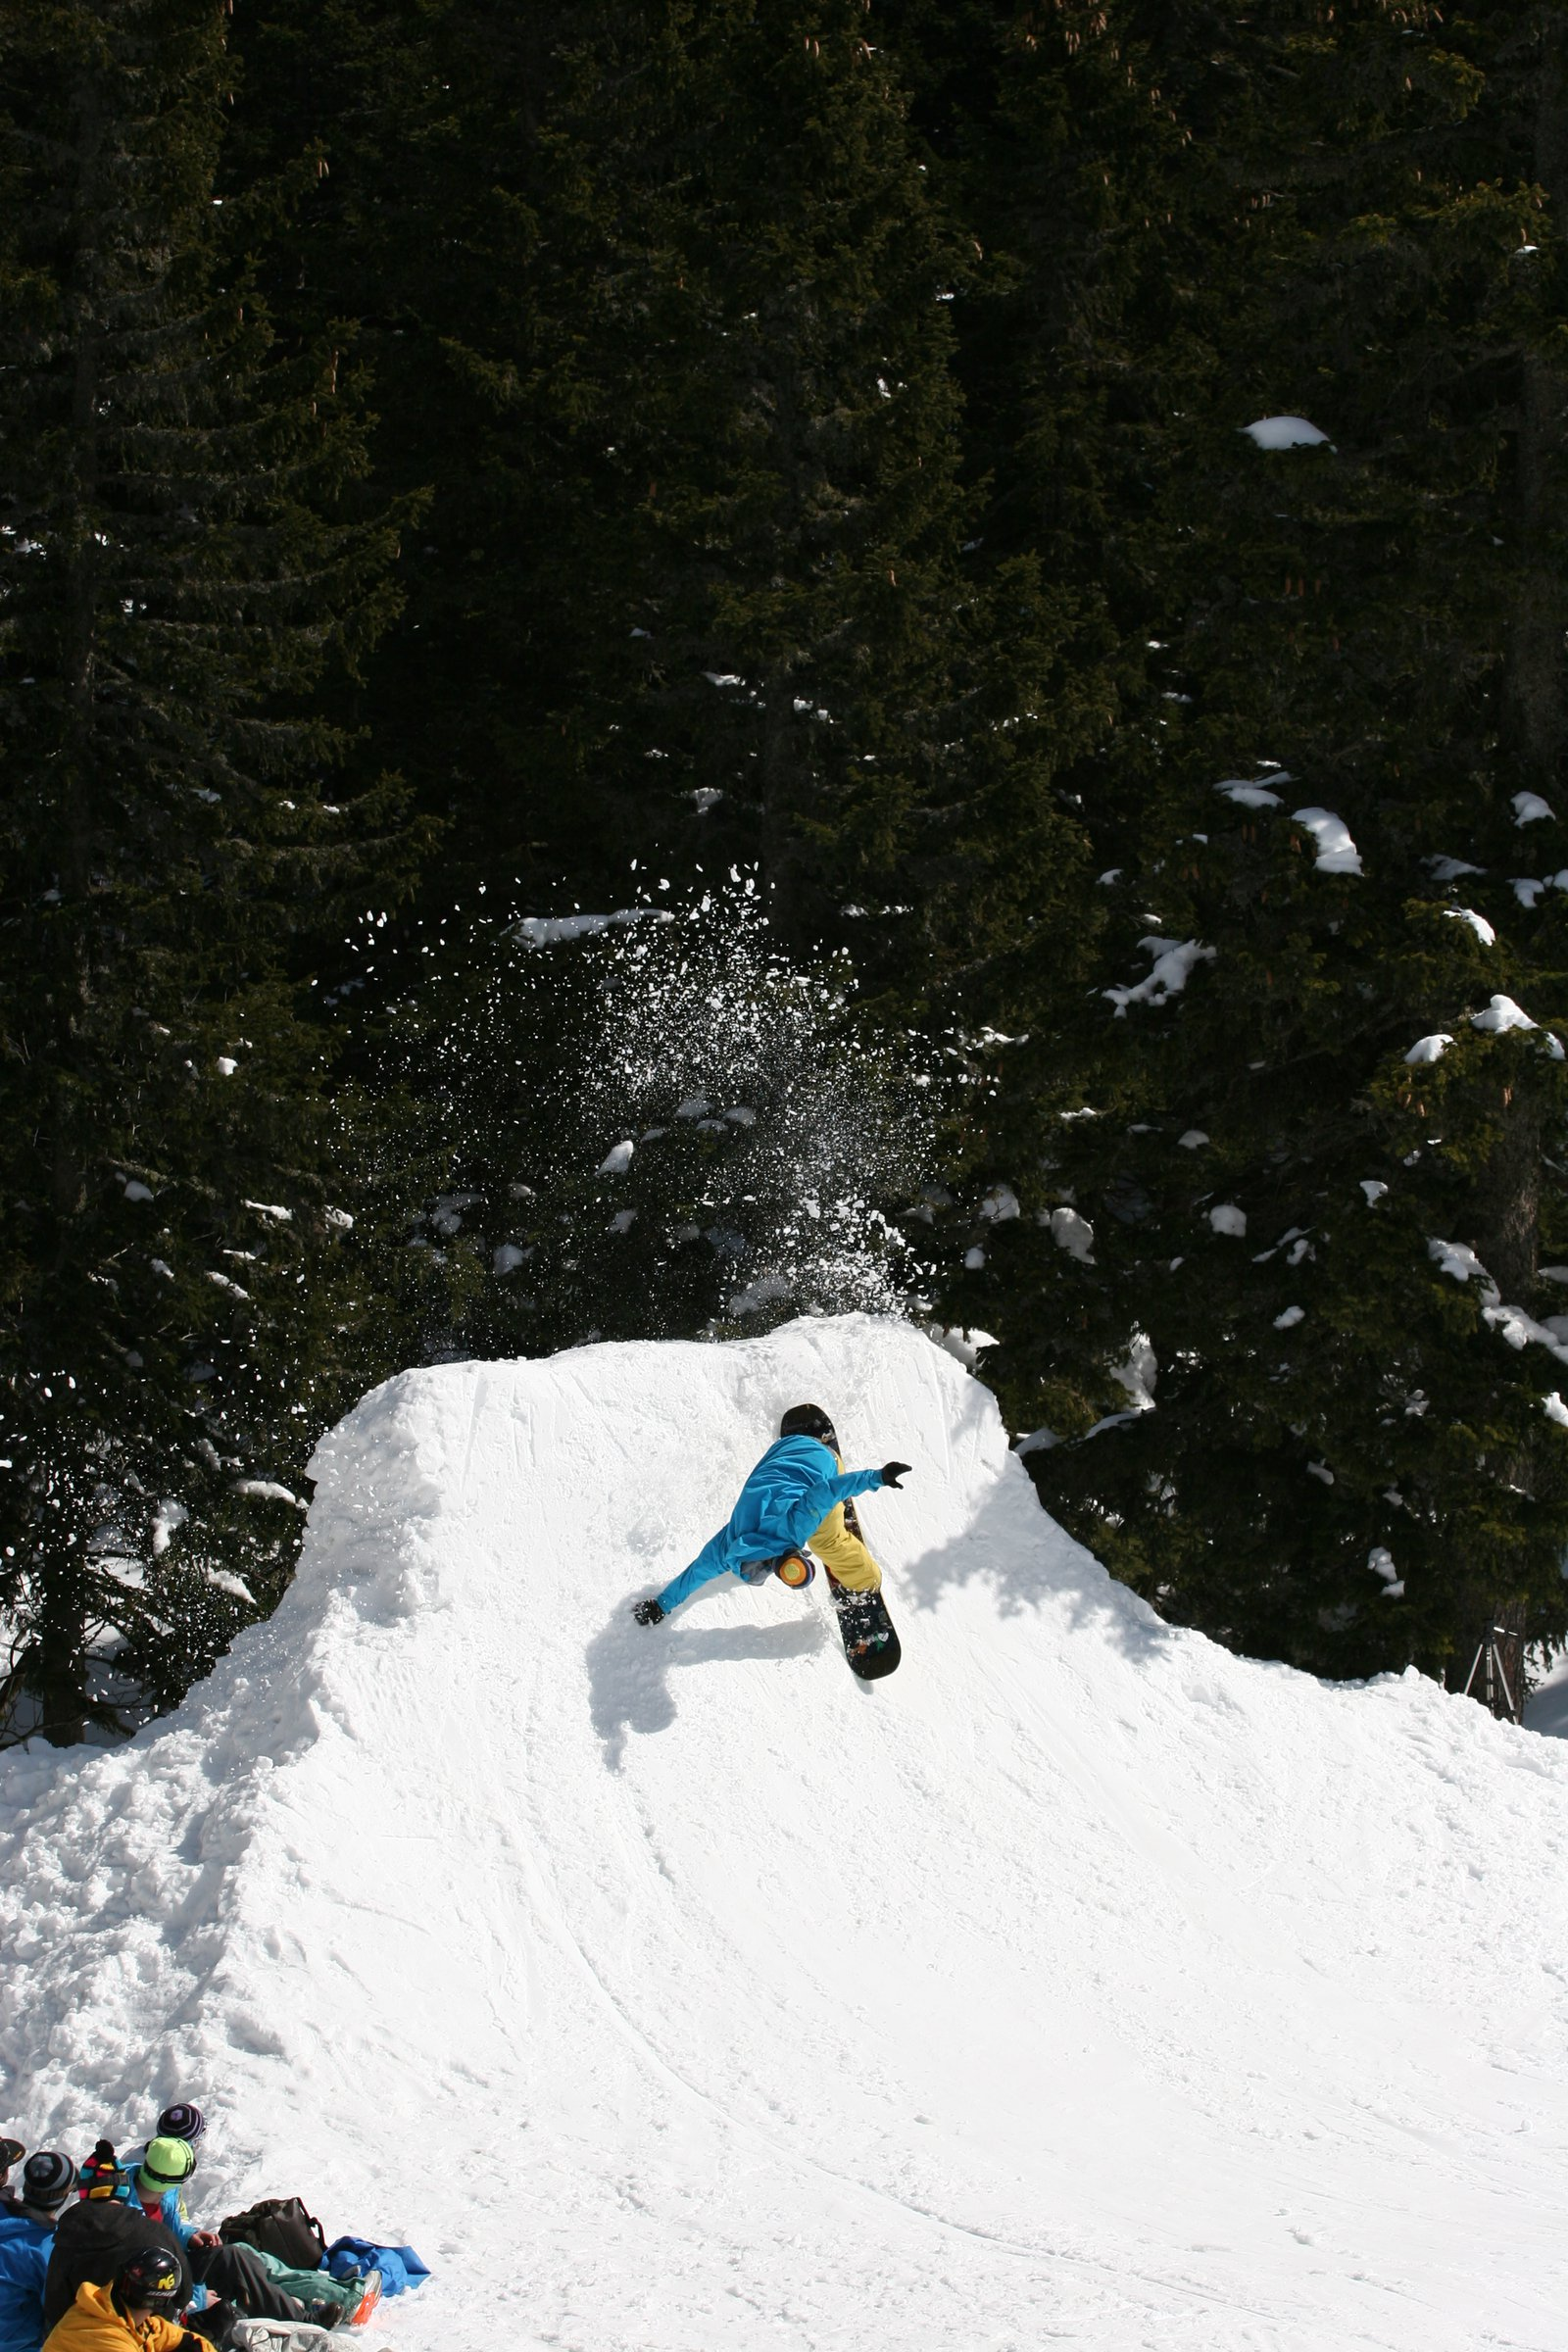 Snowboard spray